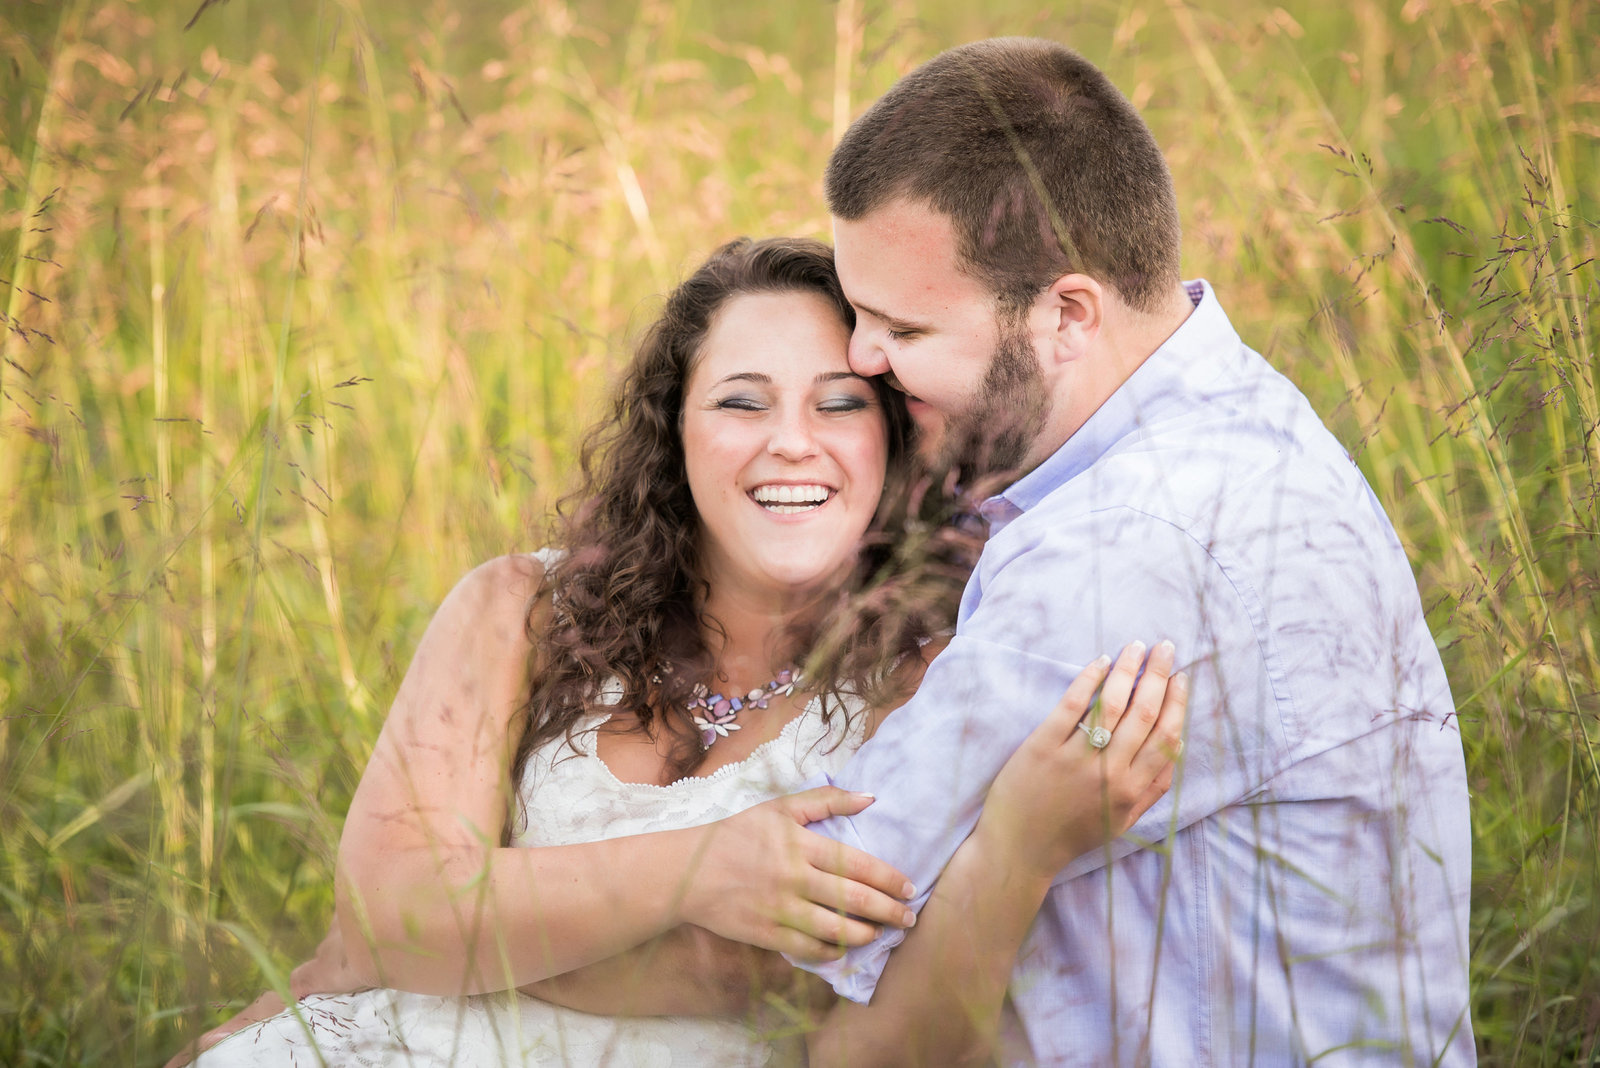 NJ_Rustic_Engagement_Photography027